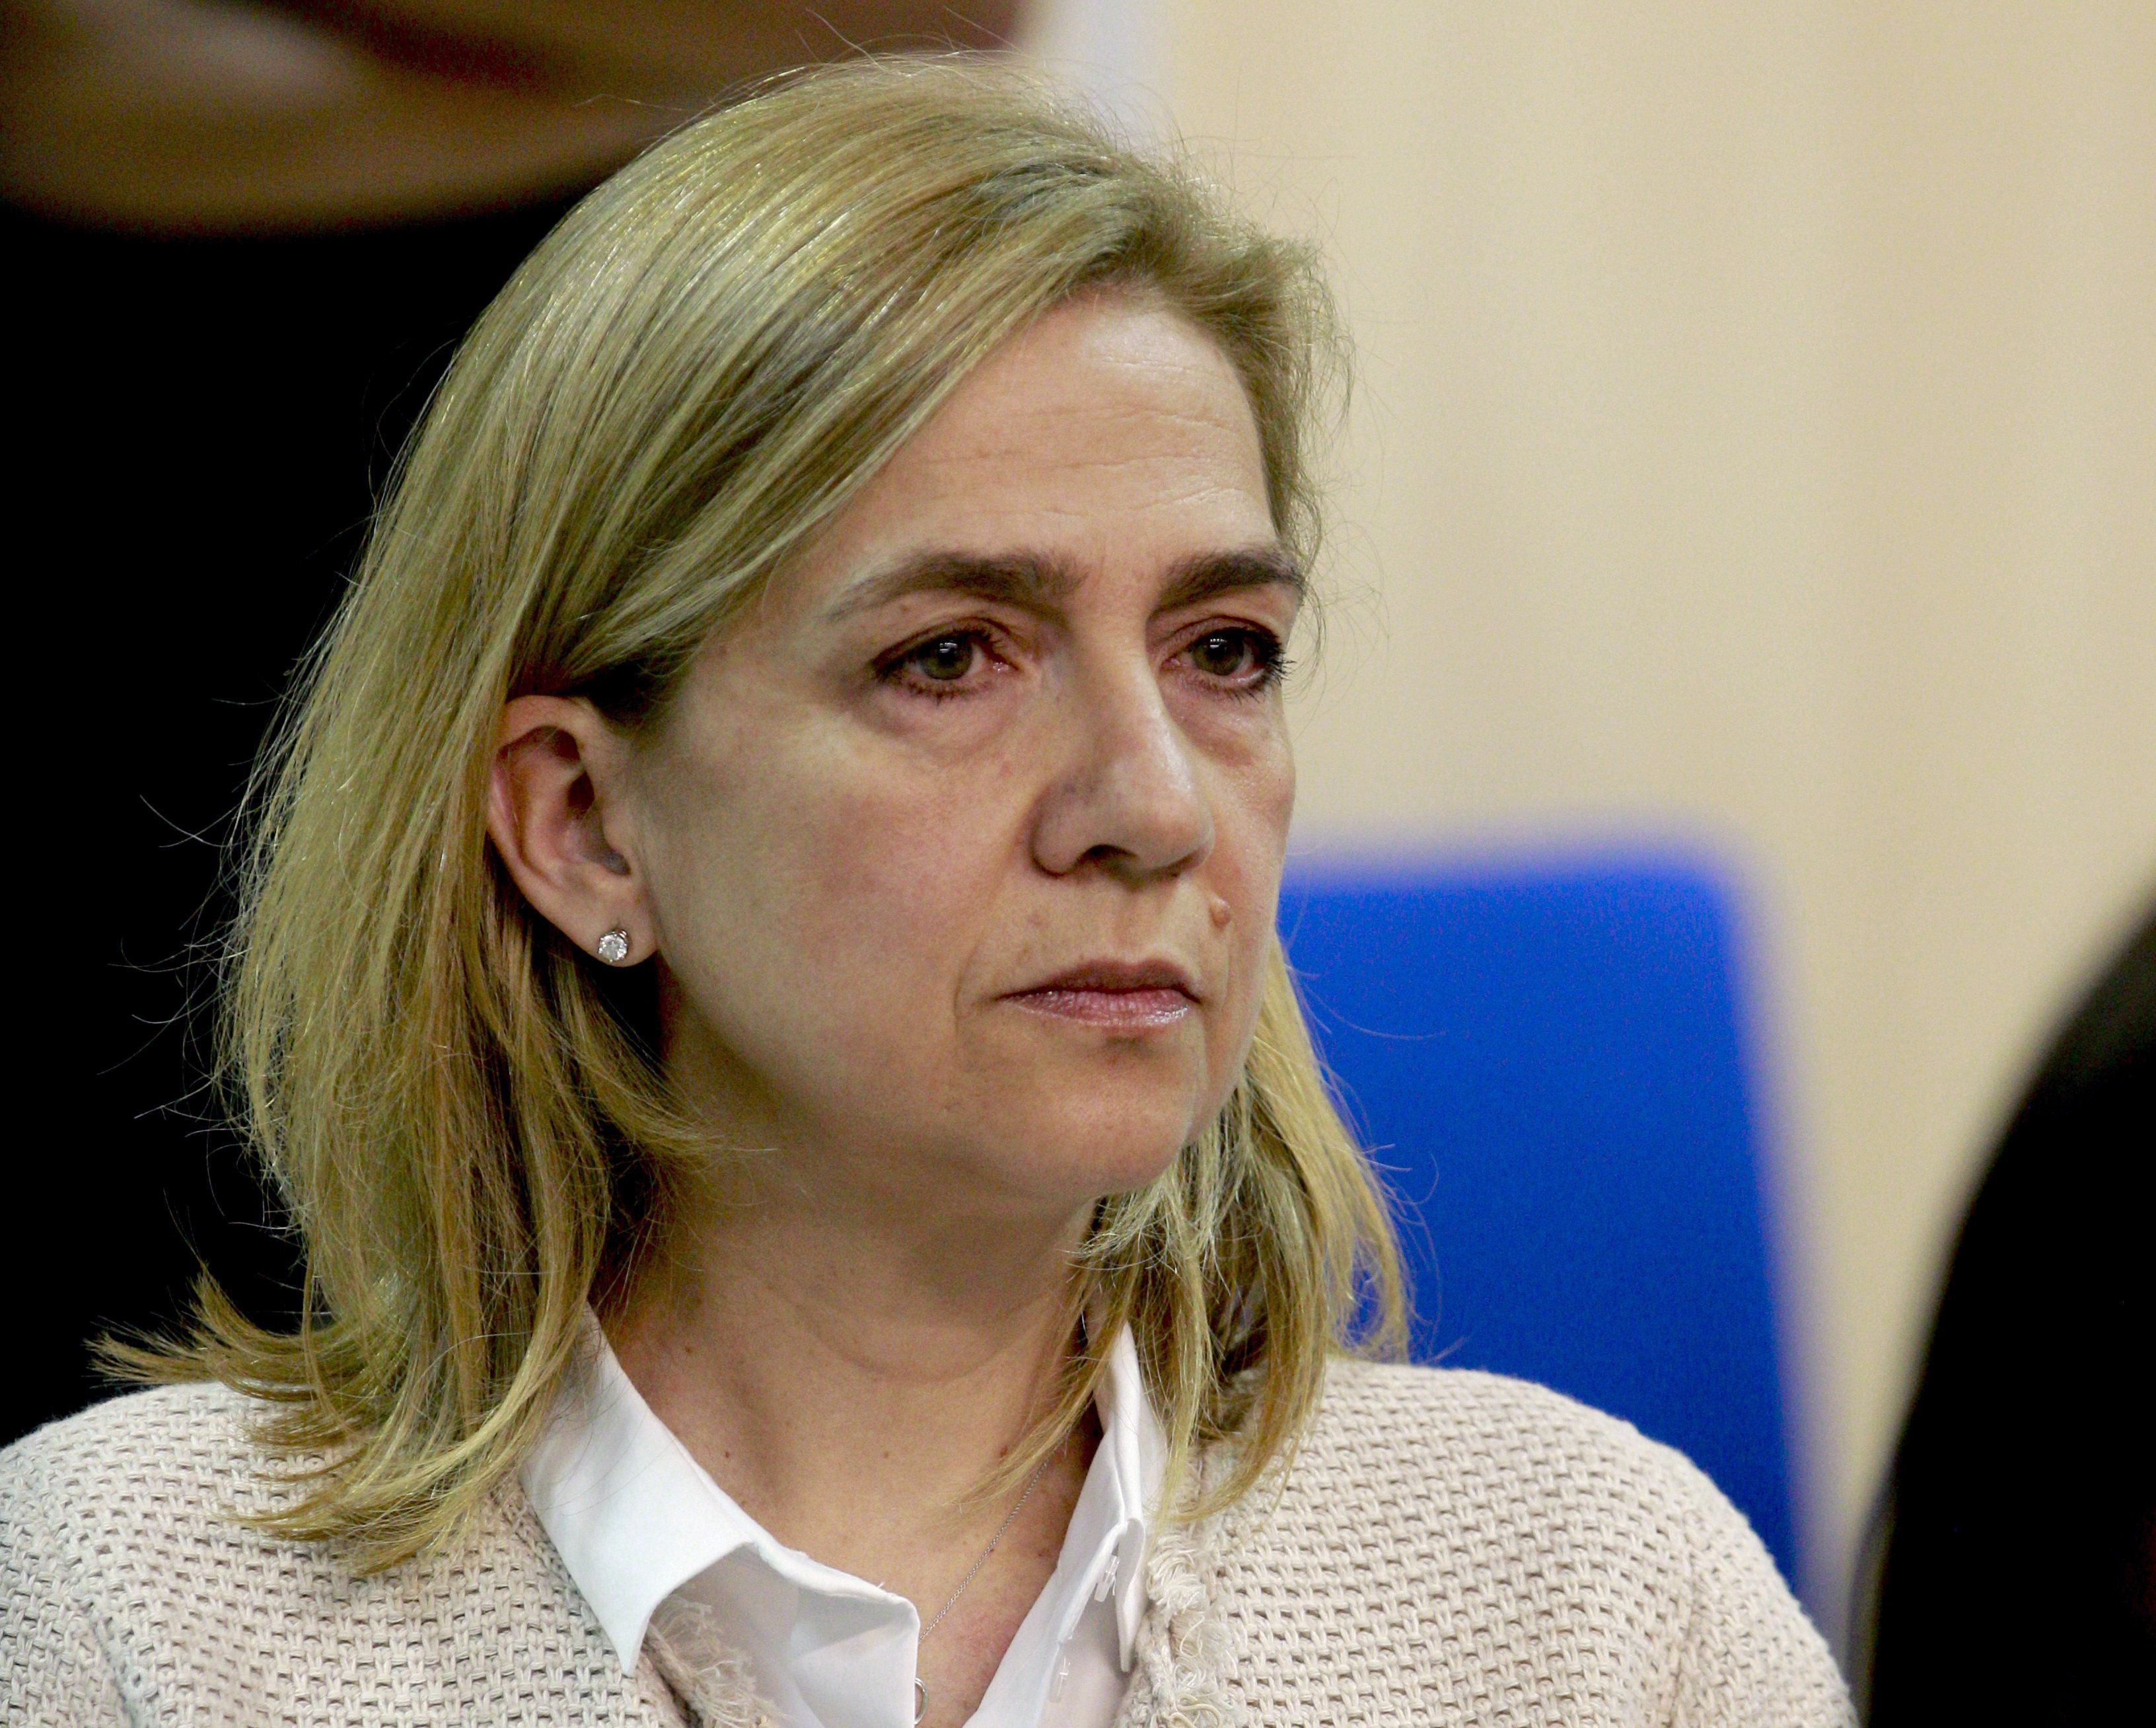 Spain's Princess Cristina sits during a hearing held in the courtroom at the Balearic School of Public Administration (EBAP) building in Palma de Mallorca, on the Spanish Balearic Island of Mallorca on June 10, 2016. Spanish prosecutors called today for the king's brother-in-law to be given a 19-and-a-half year jail term for alleged embezzlement in a trial that has also seen his wife Princess Cristina accused of tax evasion. The princess and her husband Inaki Urdangarin are among 17 suspects who went on trial in January as part of a case that involves business dealings by the Noos Institute, a not-for-profit organisation based in Palma which Urdangarin founded and chaired from 2004 to 2006.     / AFP / POOL / Ballesteros        (Photo credit should read BALLESTEROS/AFP/Getty Images)